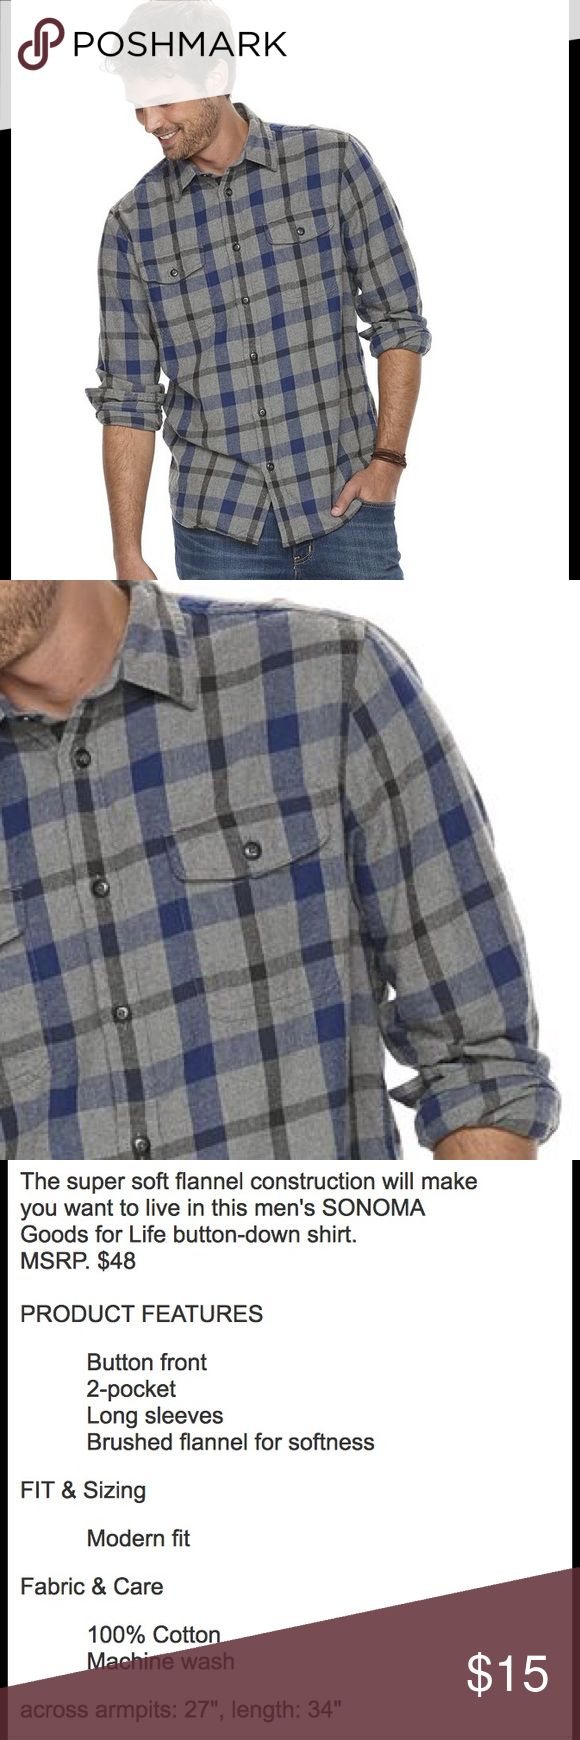 SONONA Men's XLT Modern-Fit Flannel Shirt NWT Brand new with tag. Please refer to pictures for details and description Sonoma Shirts Casual Button Down Shirts